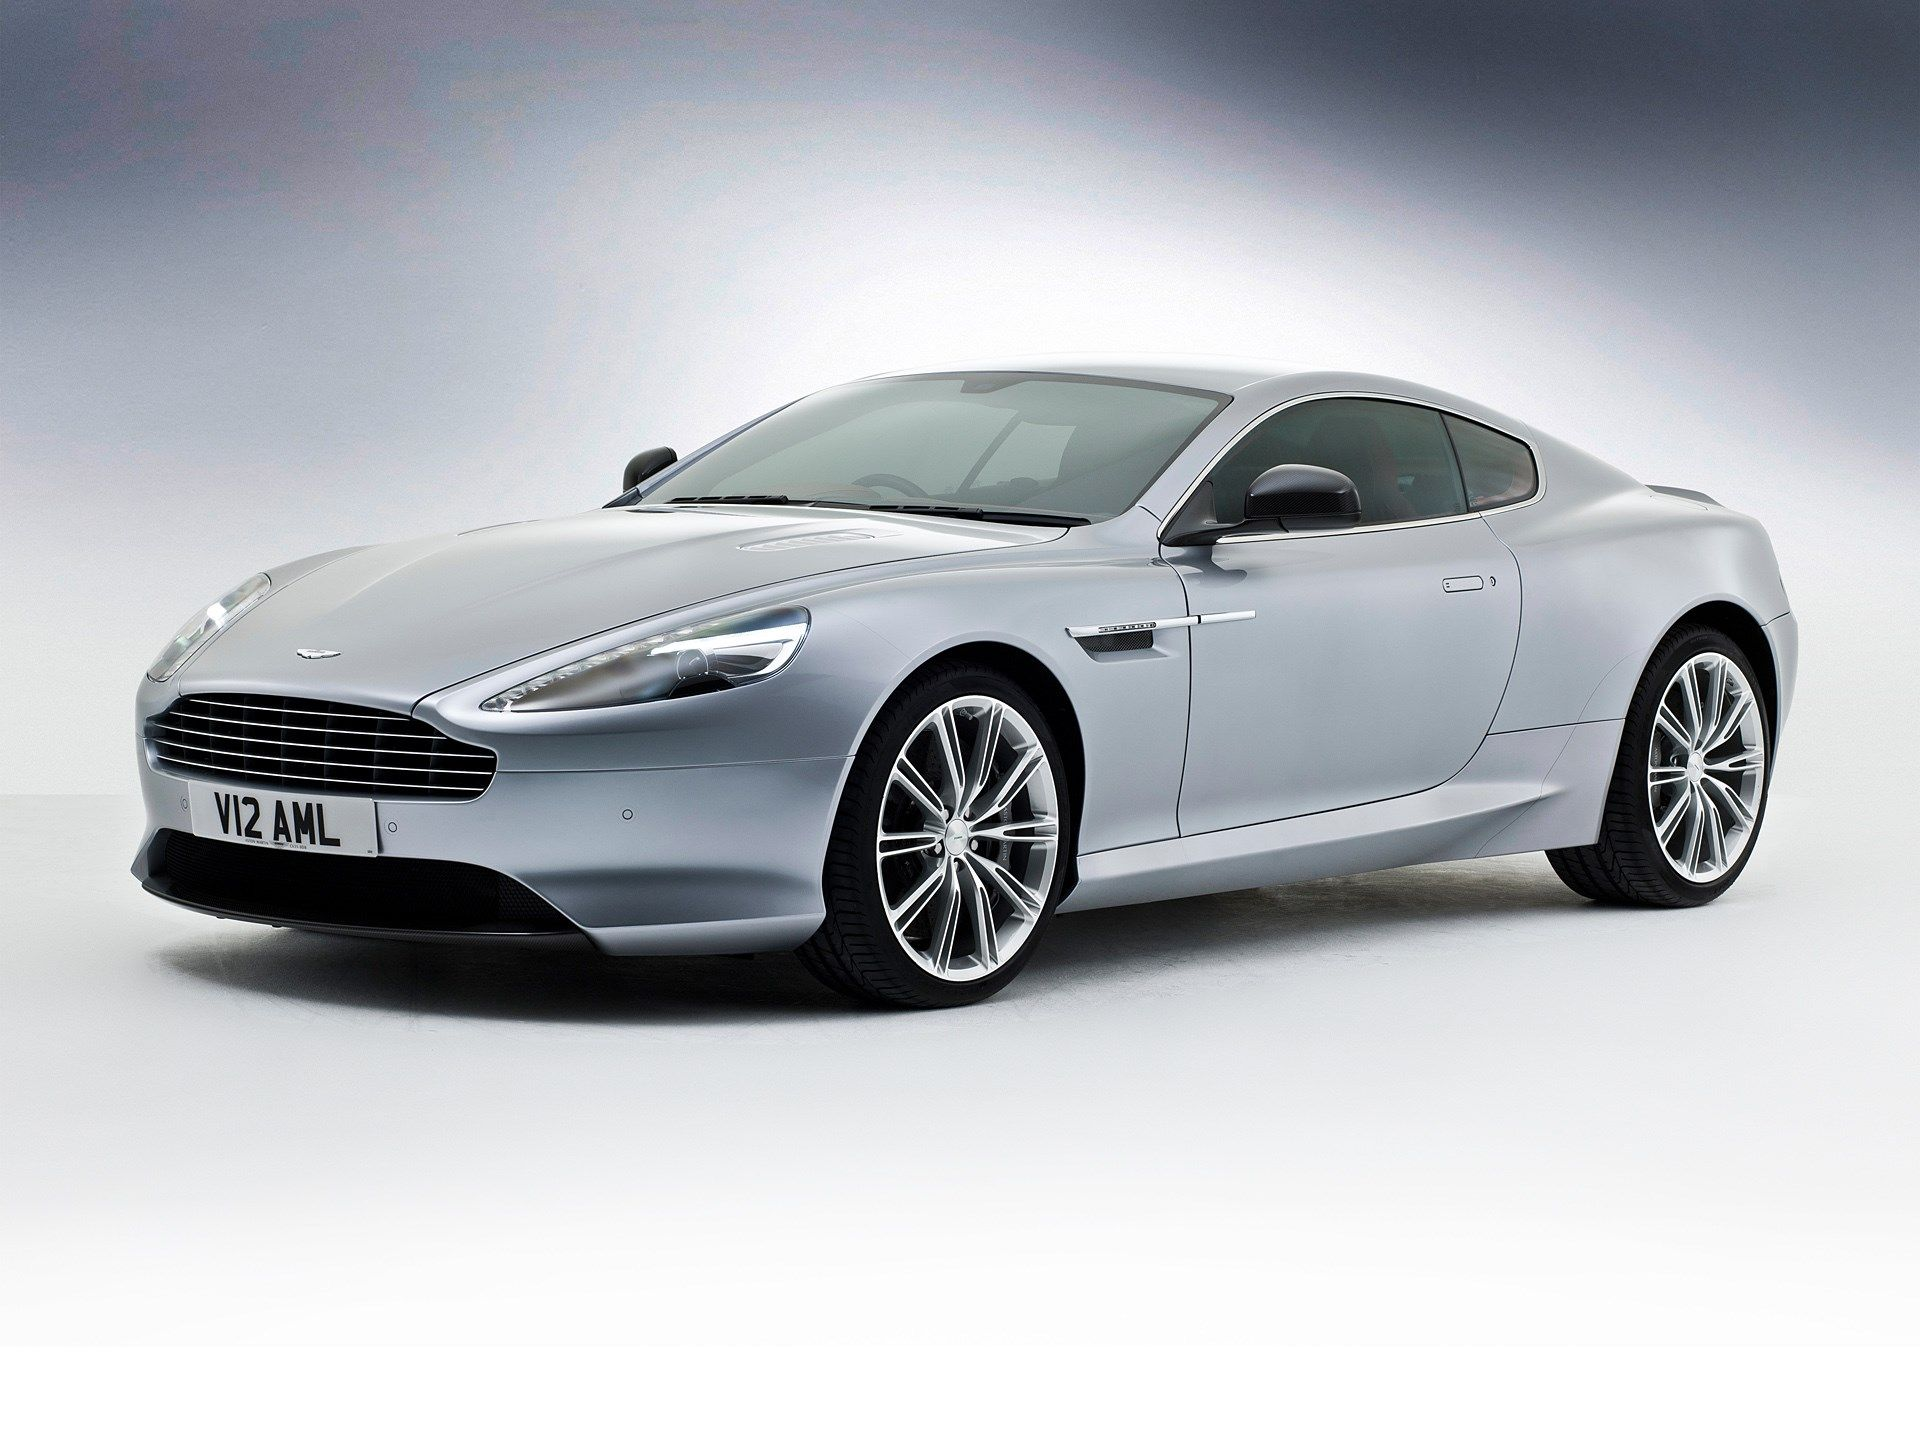 deaea80d888e26121ac5e4a31bea642e Interesting Info About aston Martin Db9 Price with Gorgeous Gallery Cars Review